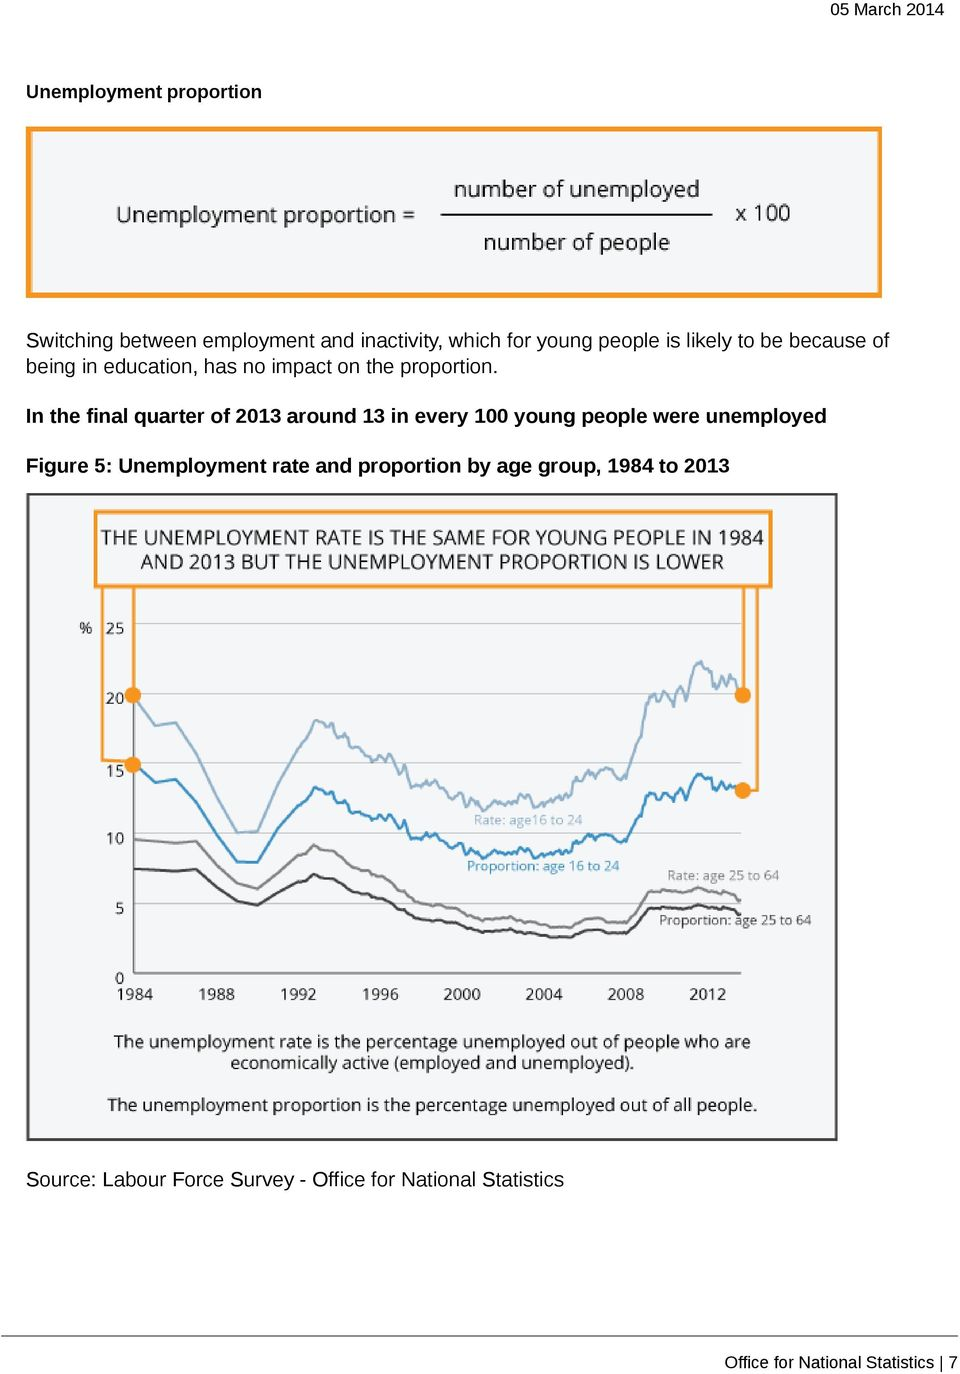 In the final quarter of 2013 around 13 in every 100 young people were unemployed Figure 5: Unemployment